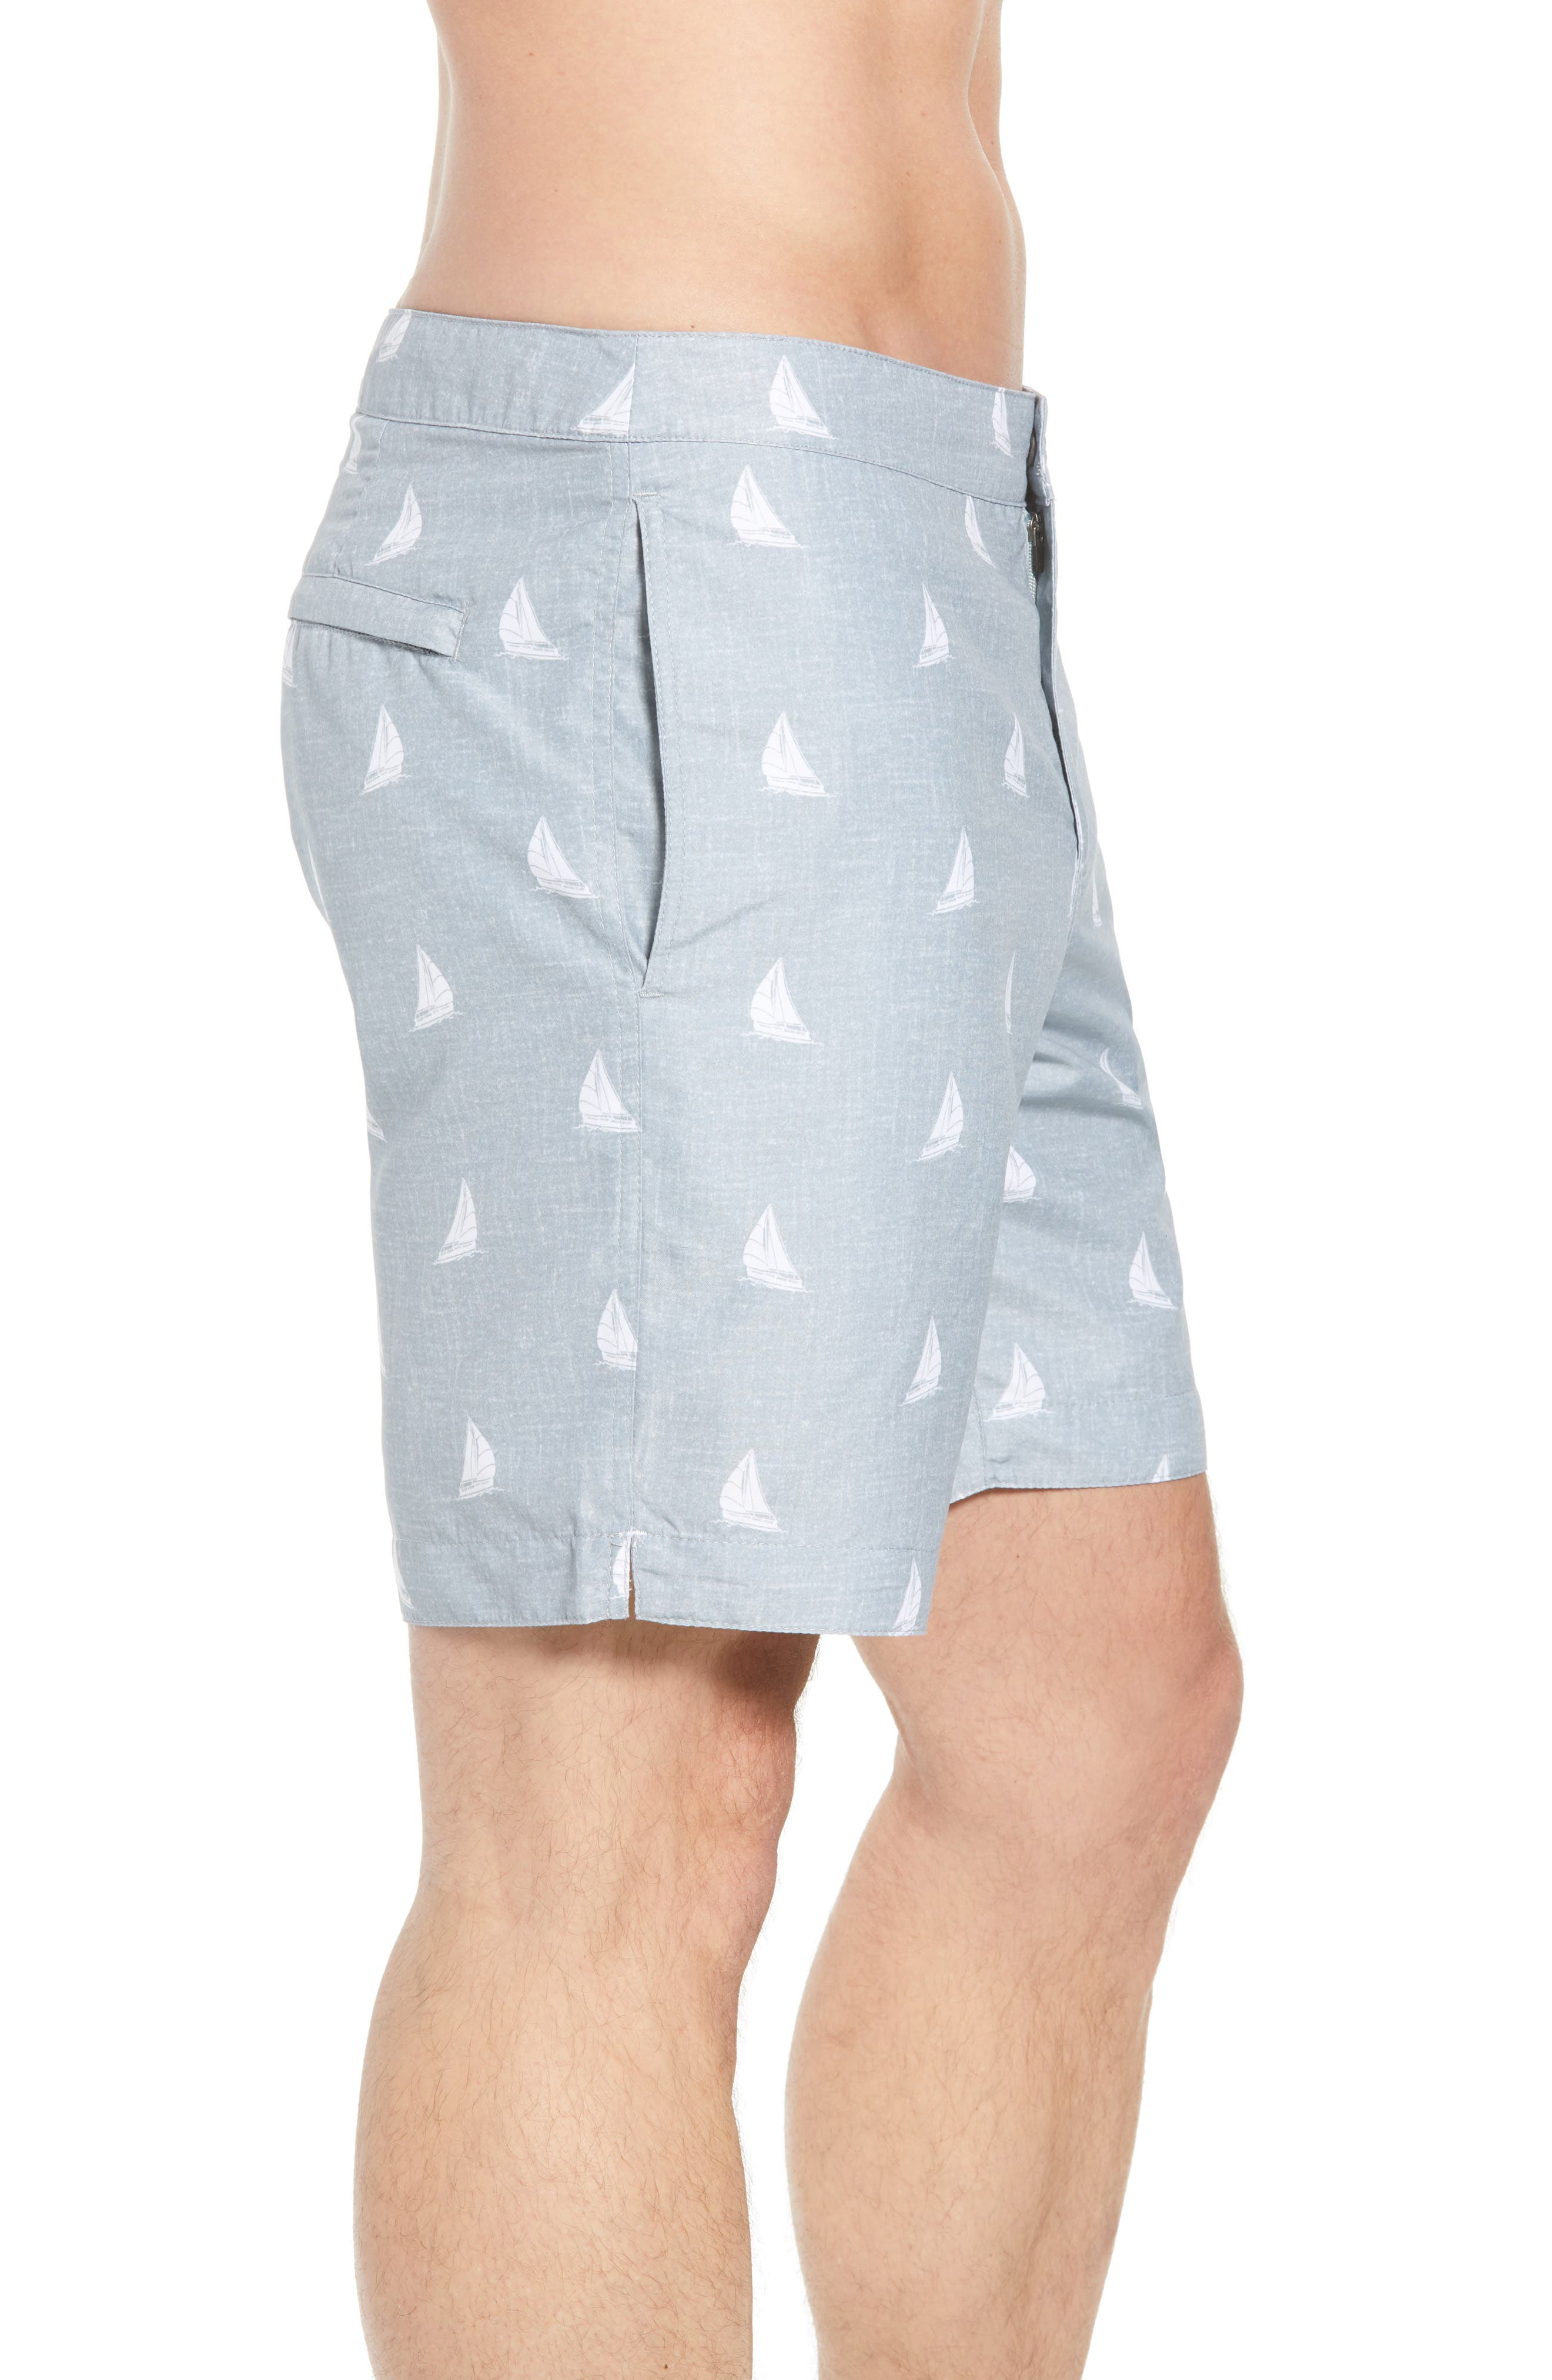 Aruba Slim Fit Swim Trunks,                             Alternate thumbnail 3, color,                             HEATHERED GREY SAILBOATS